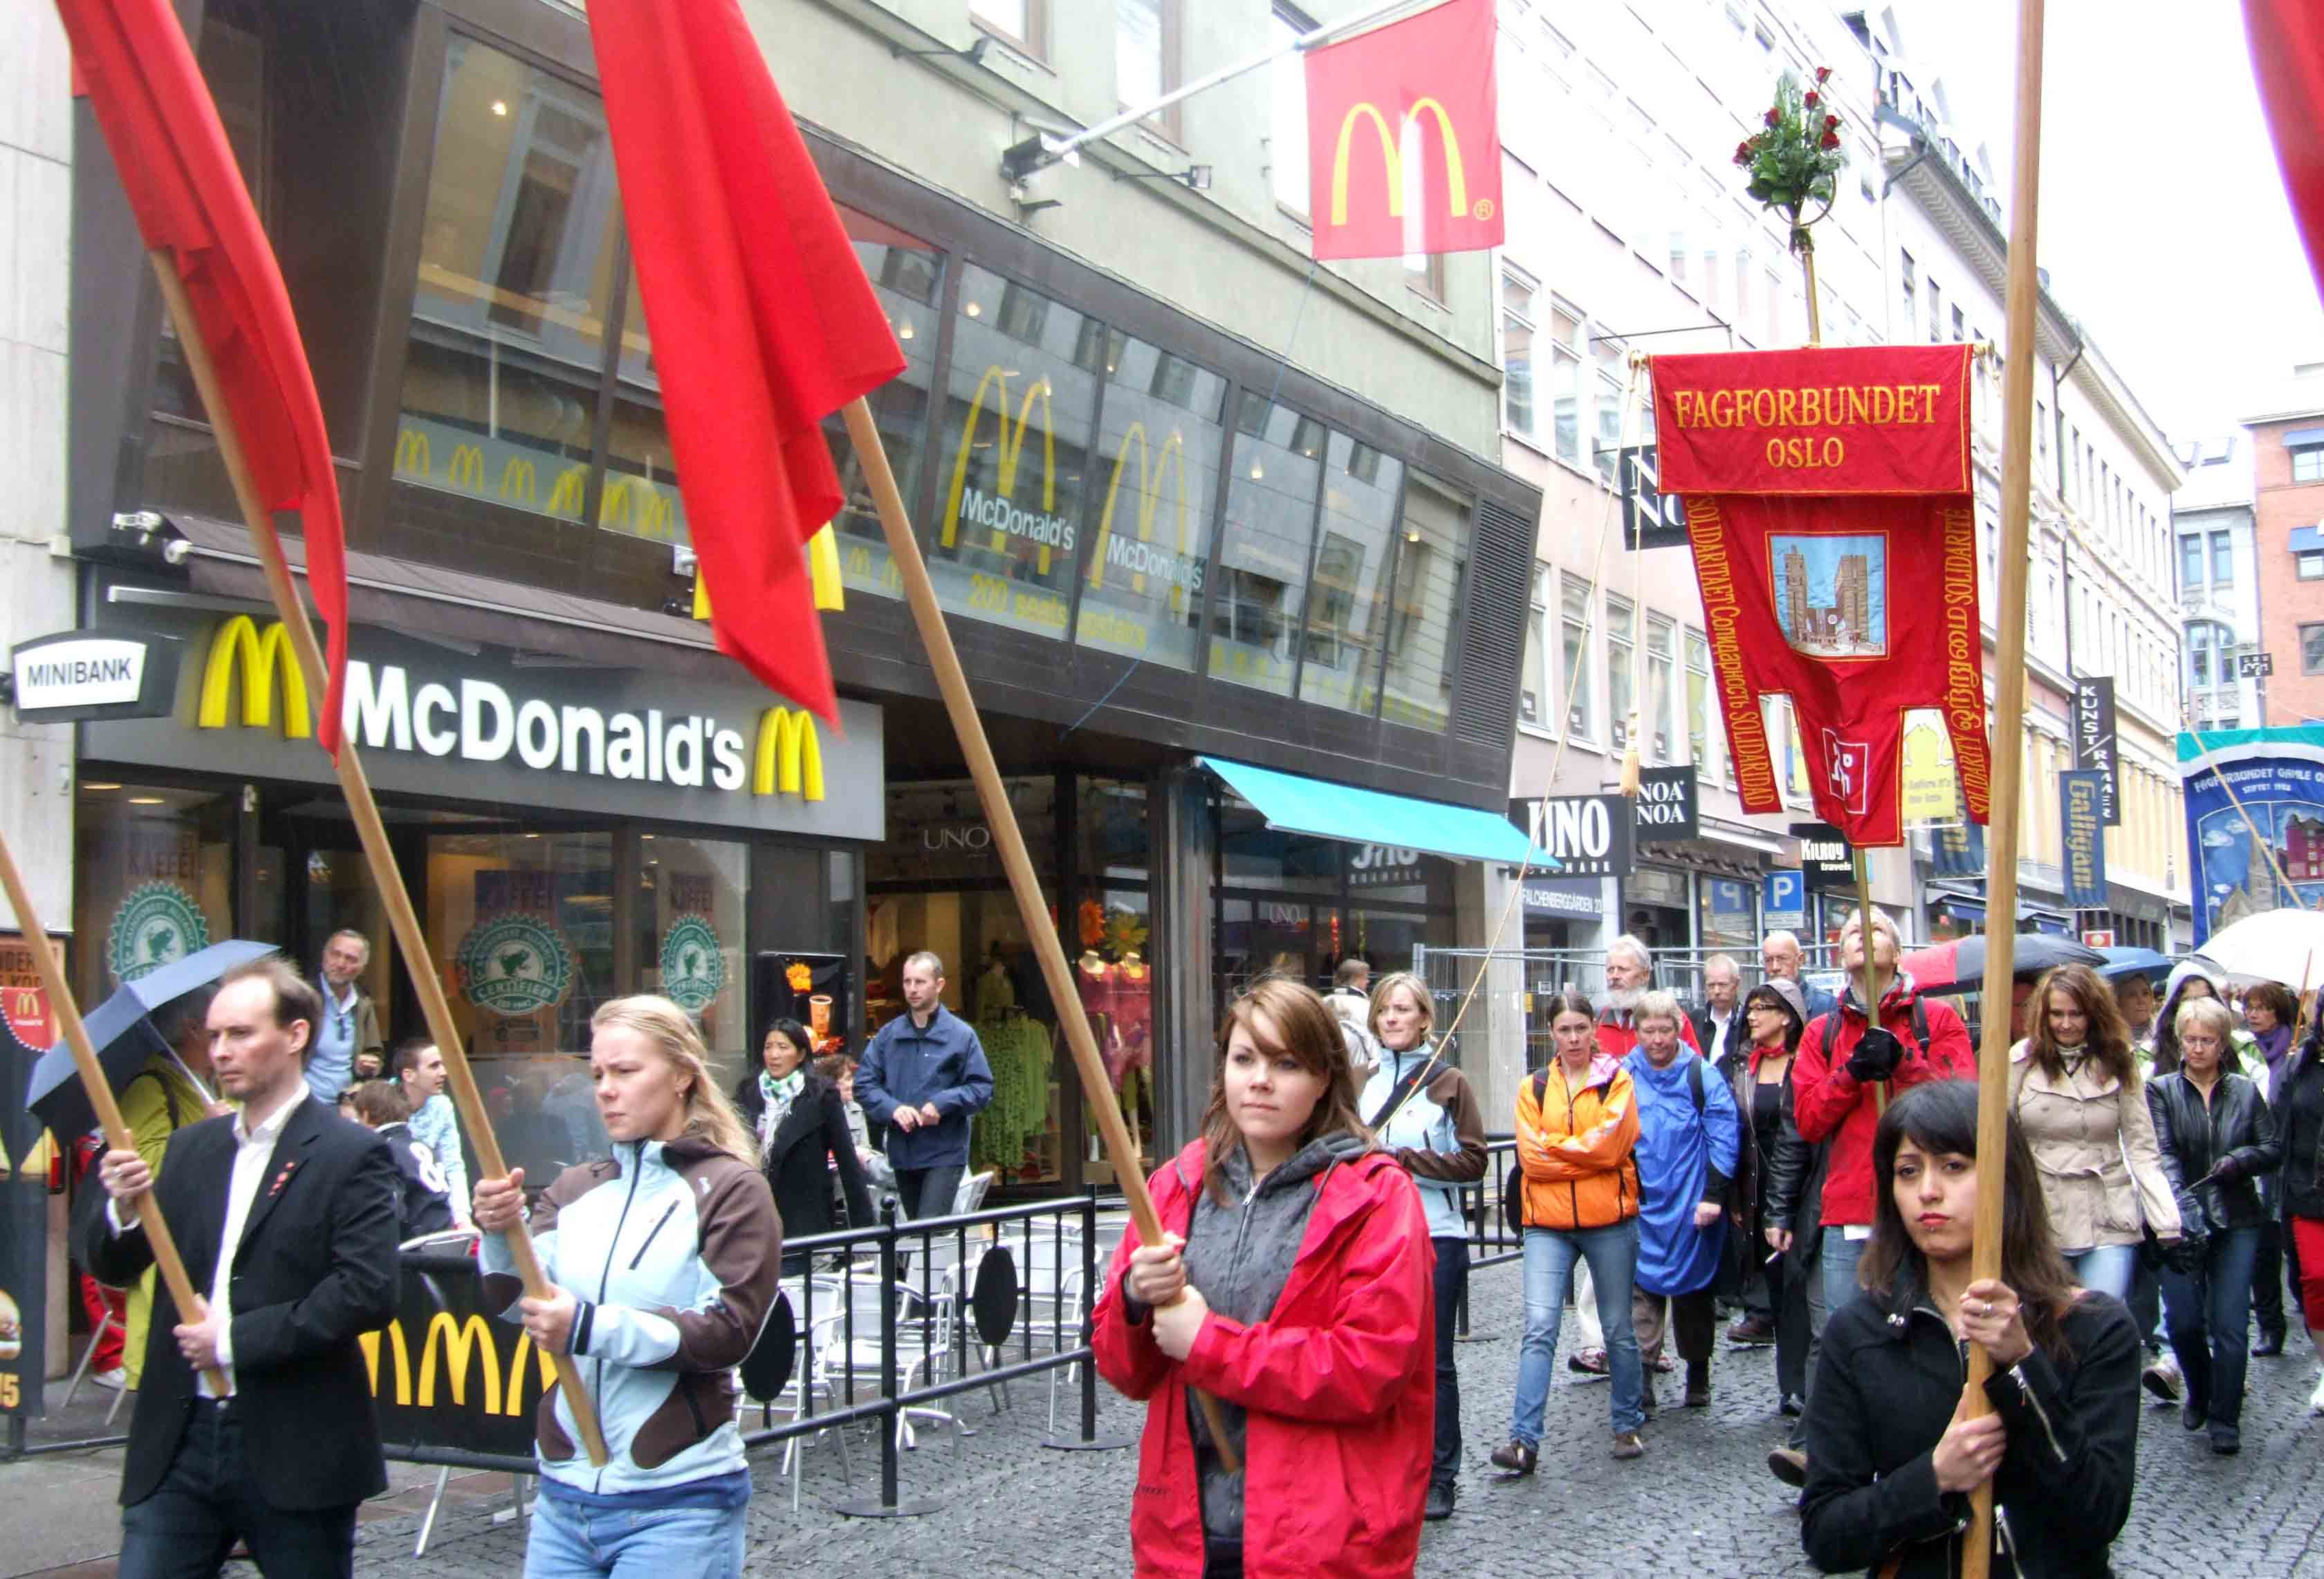 Spread of franchises weakens unions